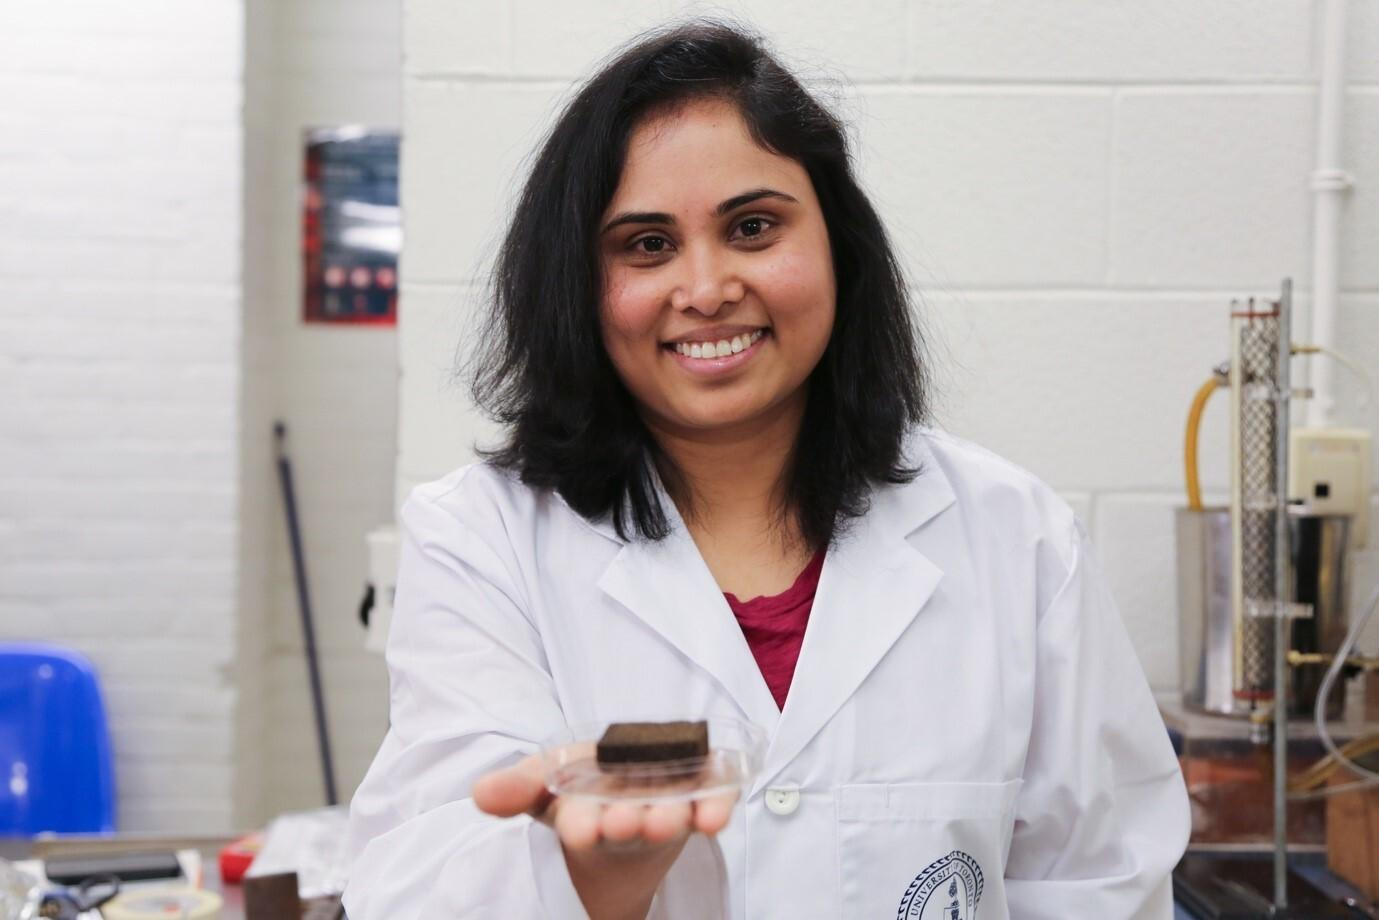 Dr. Pavani Cherukupally with the sponge, in her lab